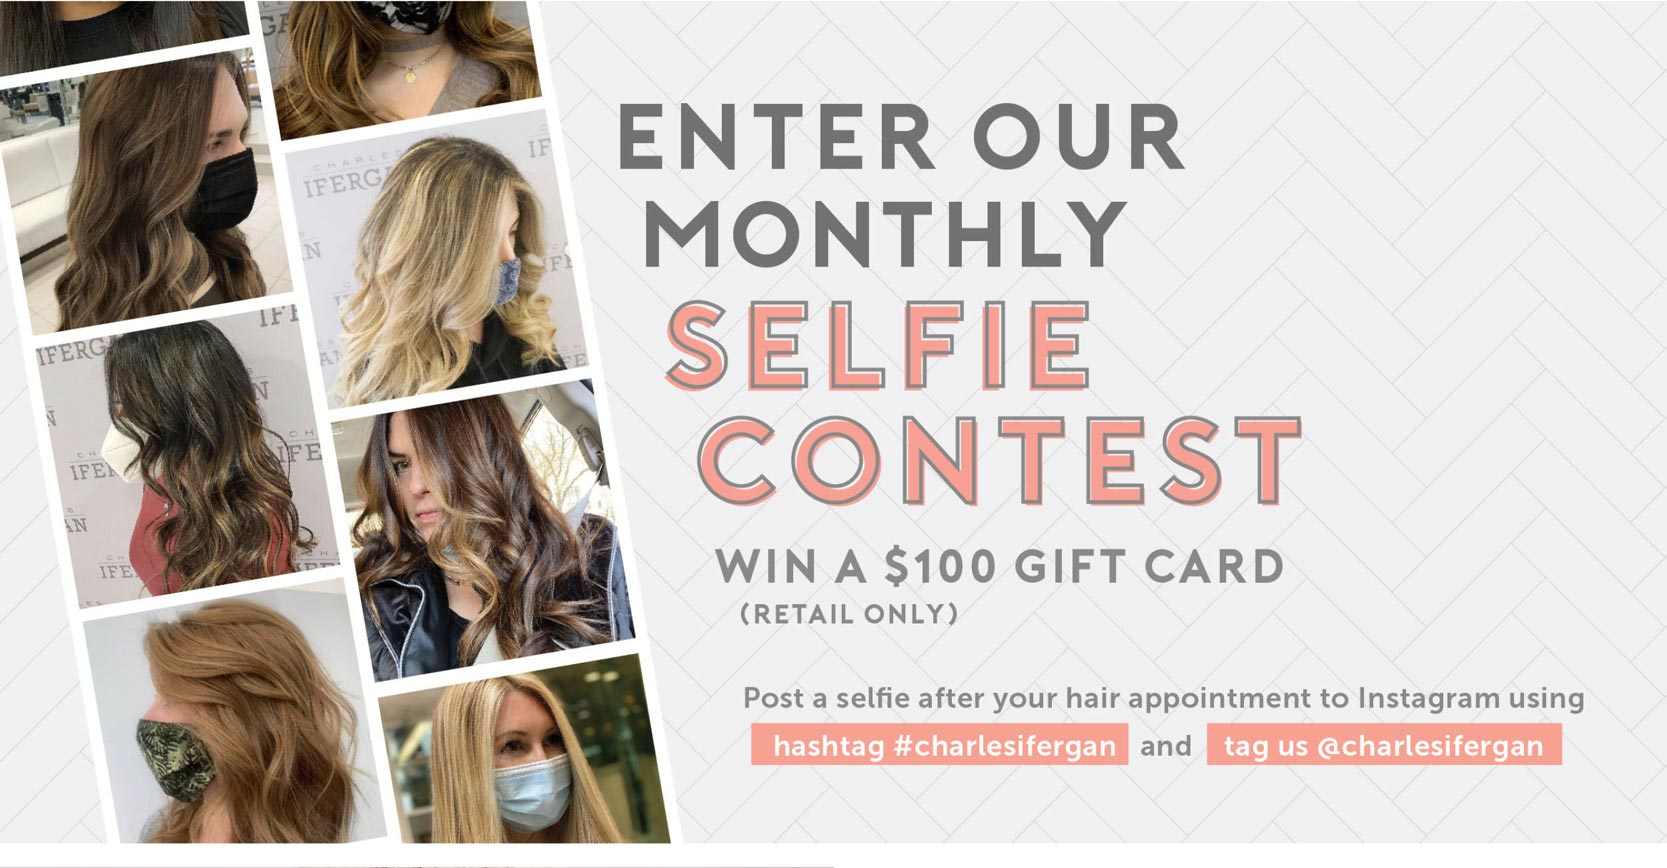 Enter our monthly selfie contest. Win a $100 retail giftcard. Post a selfie after your hair appointment to Instagram using hashtag #charlesifergan and tag us @charlesifergan